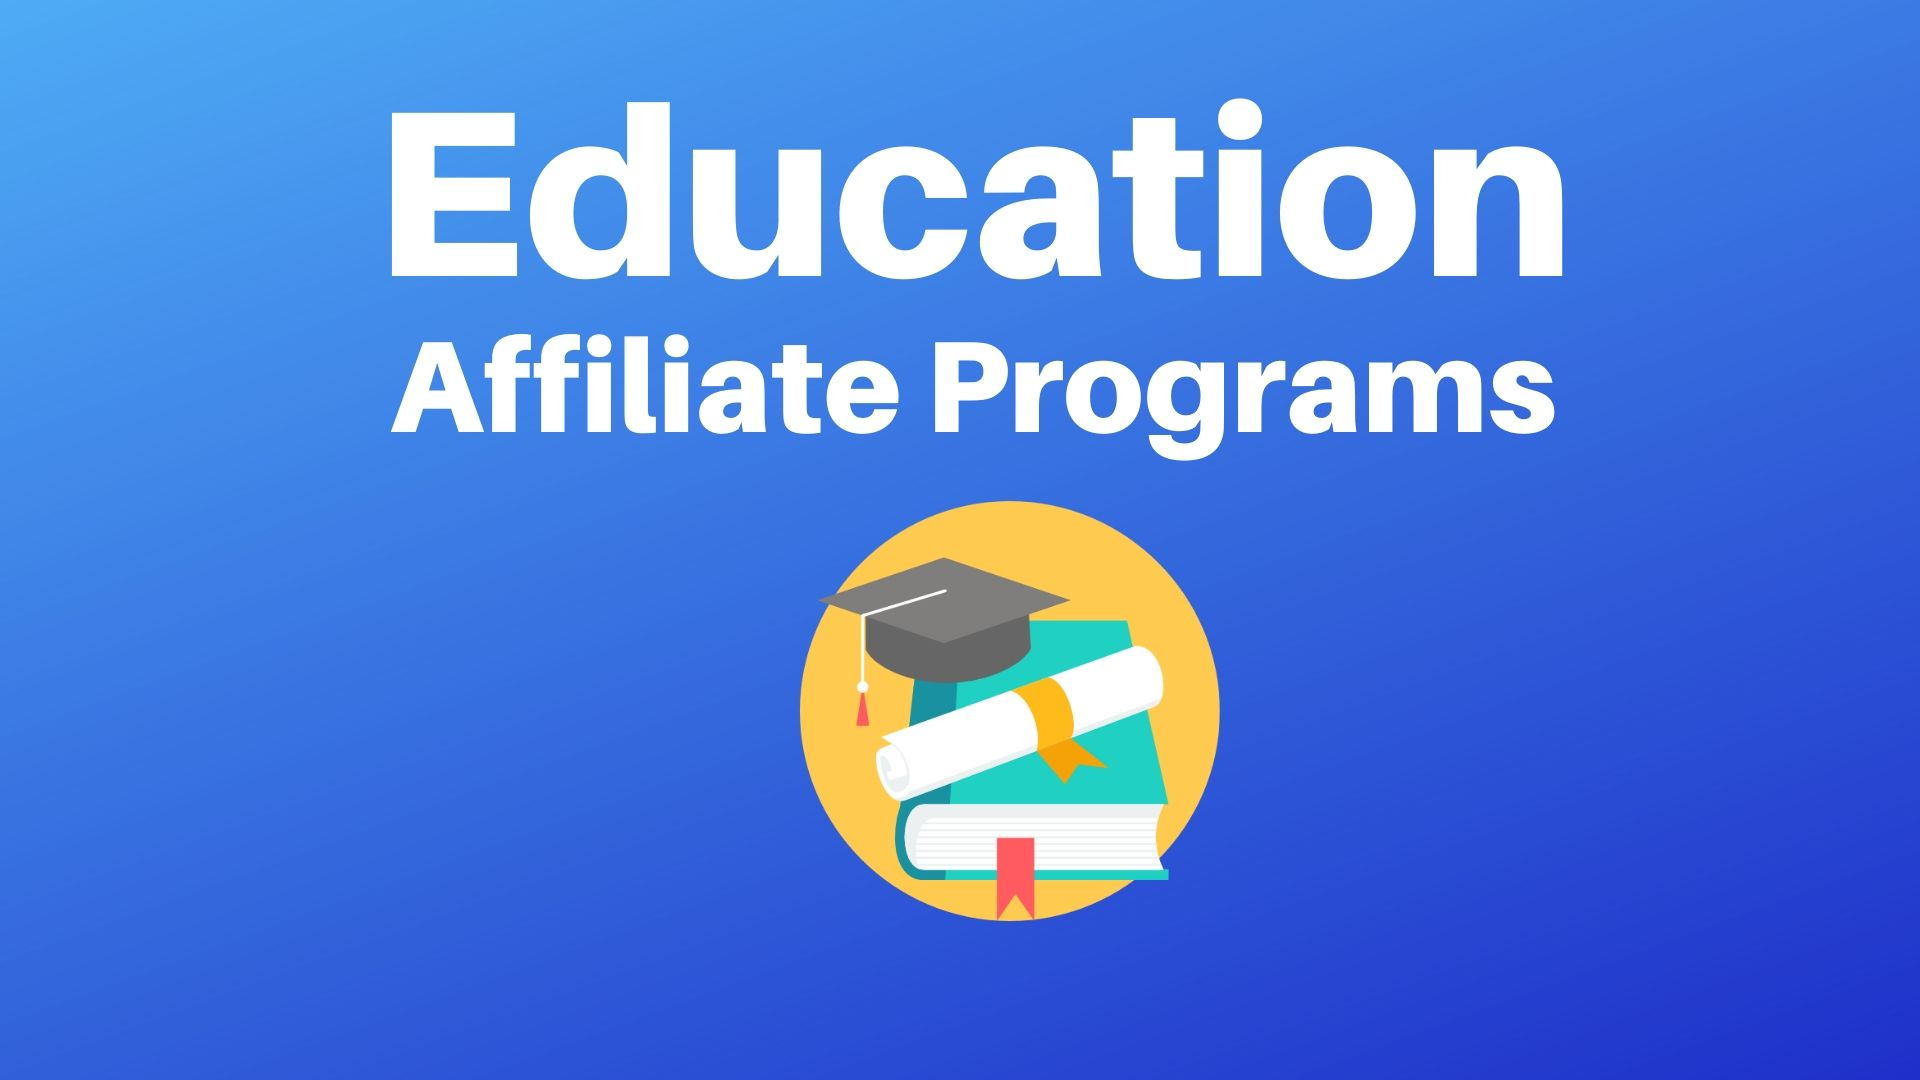 Education Affiliate Programs